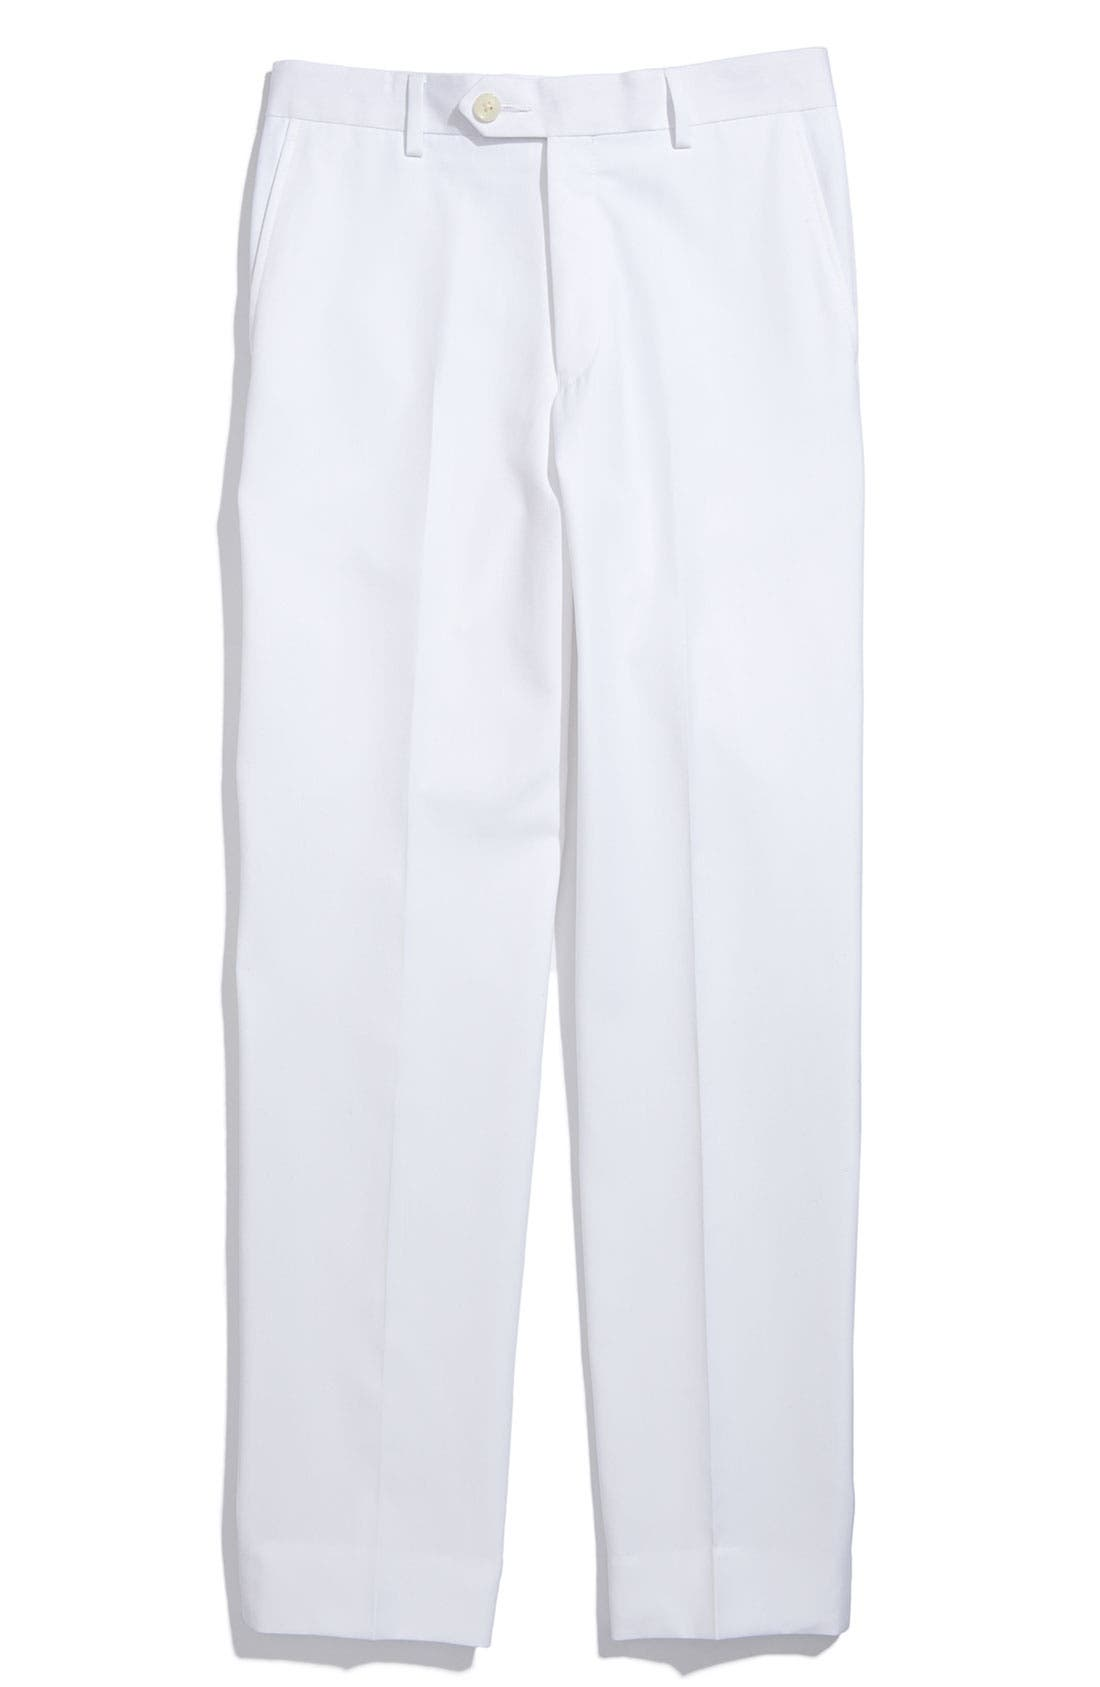 Main Image - Joseph Abboud Flat Front Dress Pants (Little Boys, Big Boys & Husky)